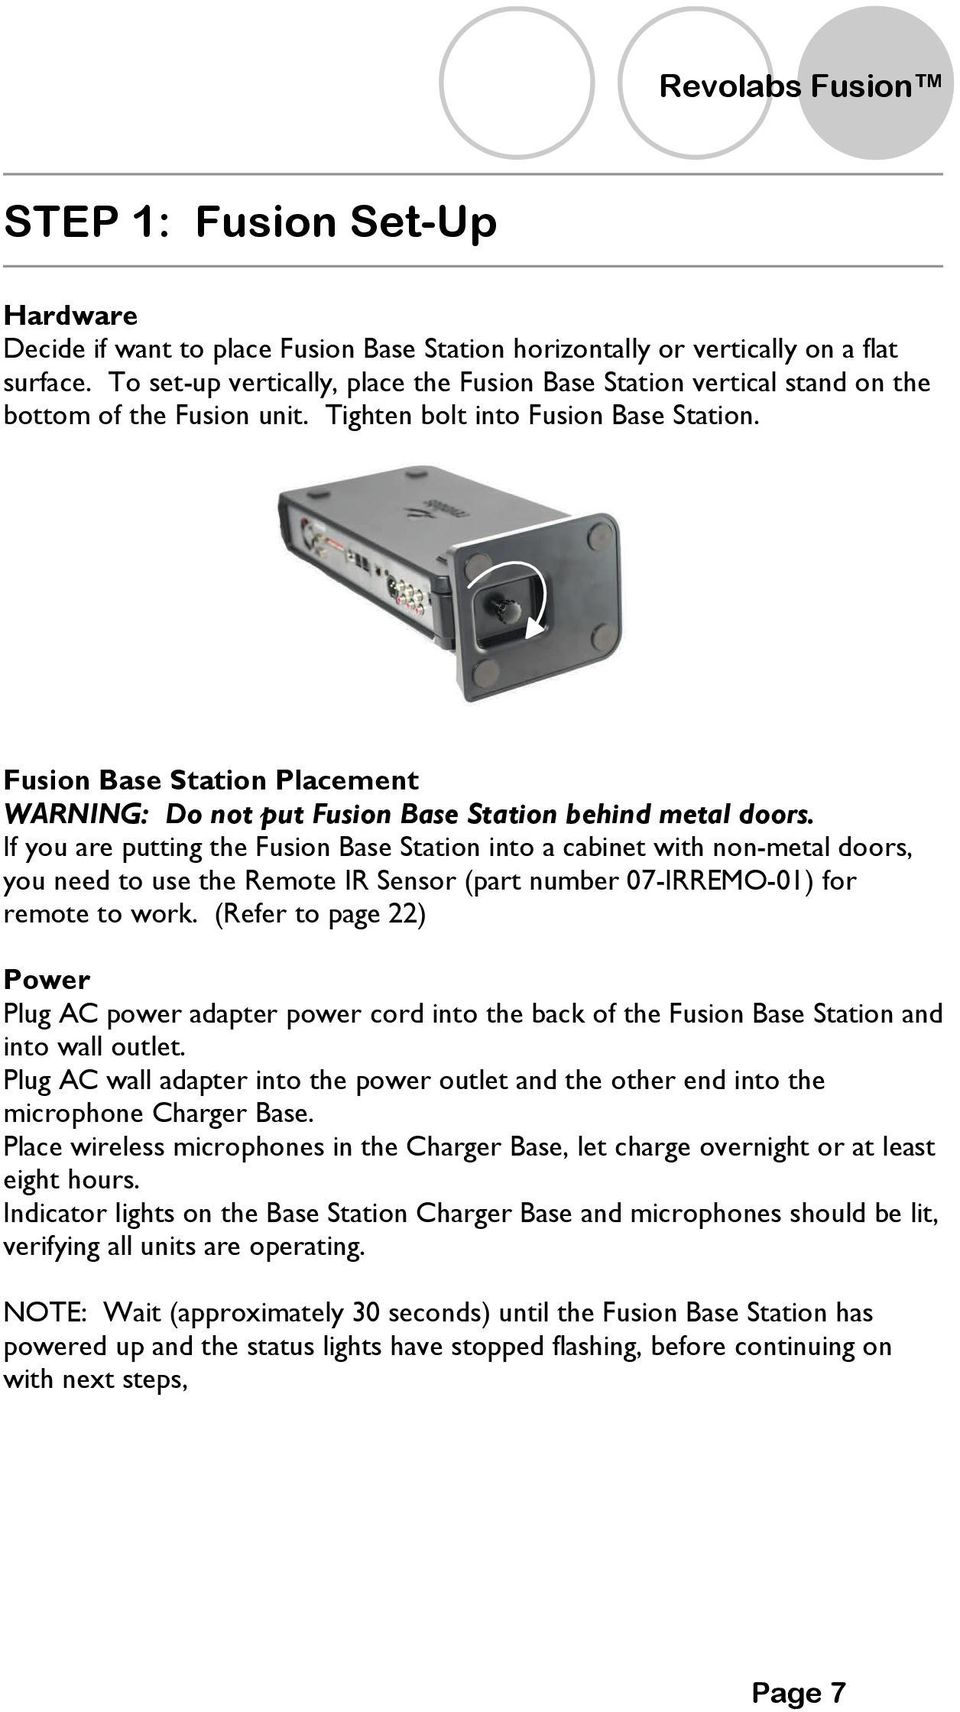 Fusion Base Station Placement WARNING: Do not put Fusion Base Station behind metal doors.